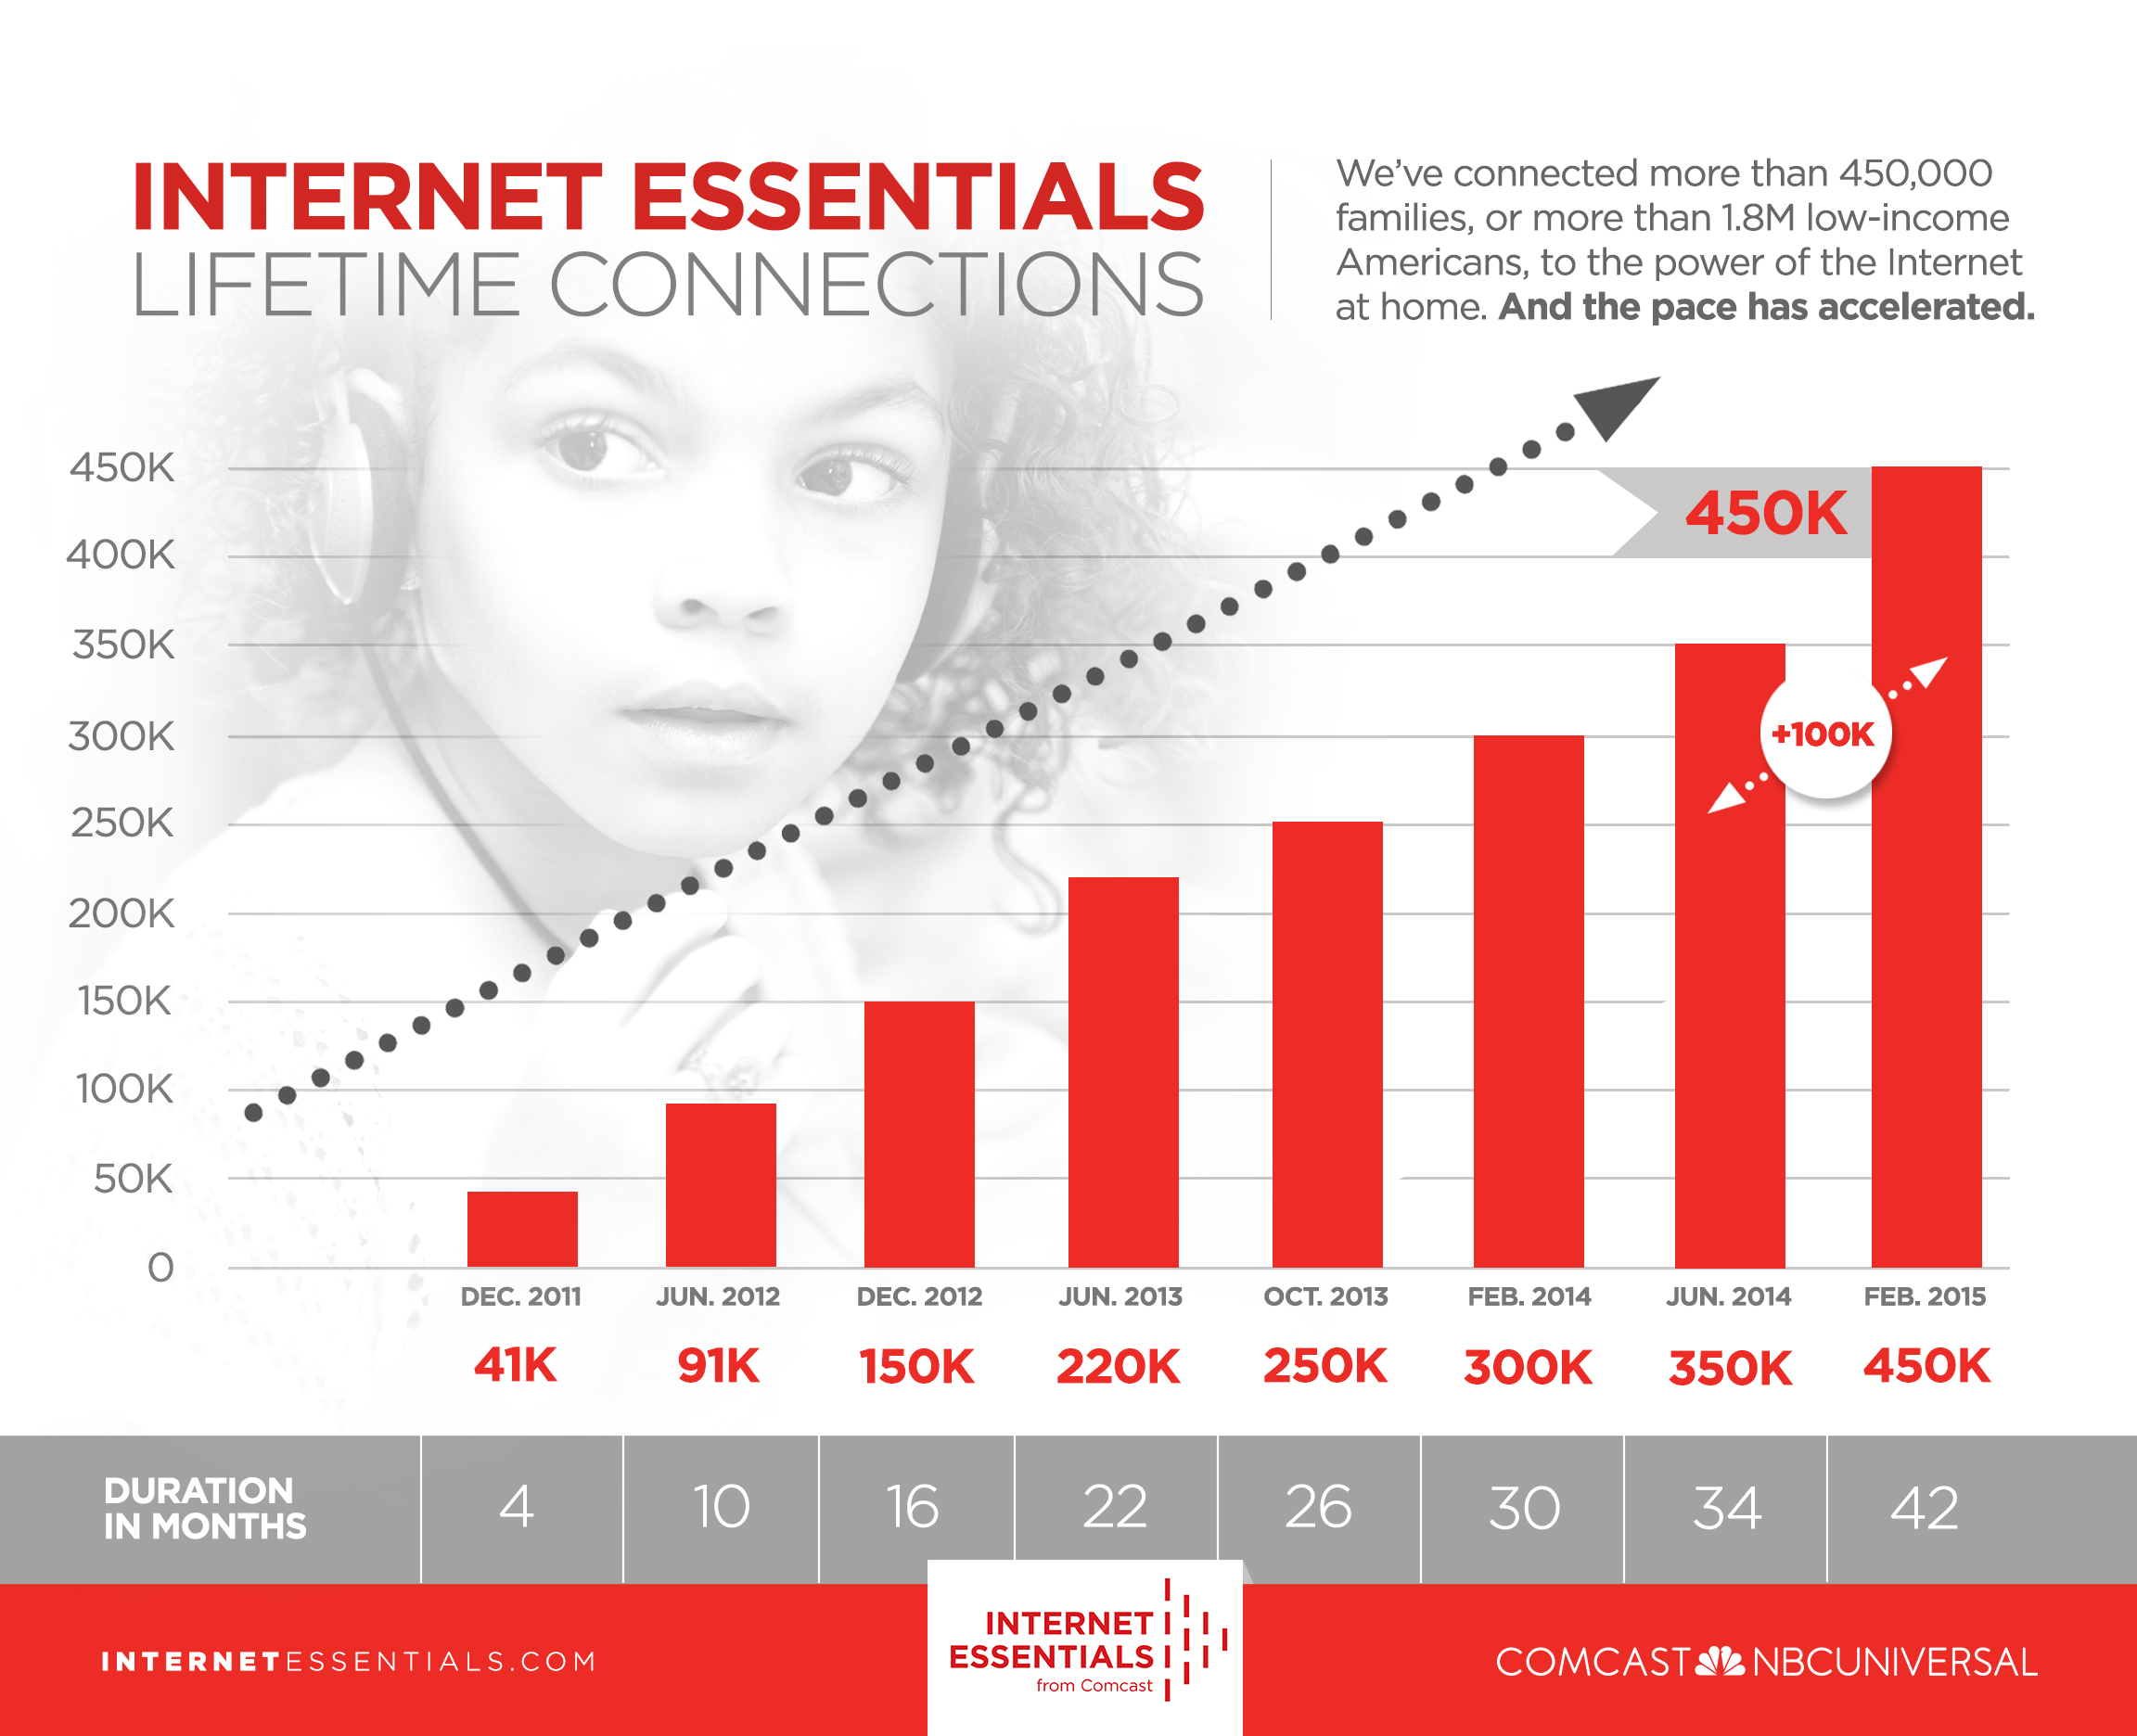 chart showing growth in the Internet Essentials program